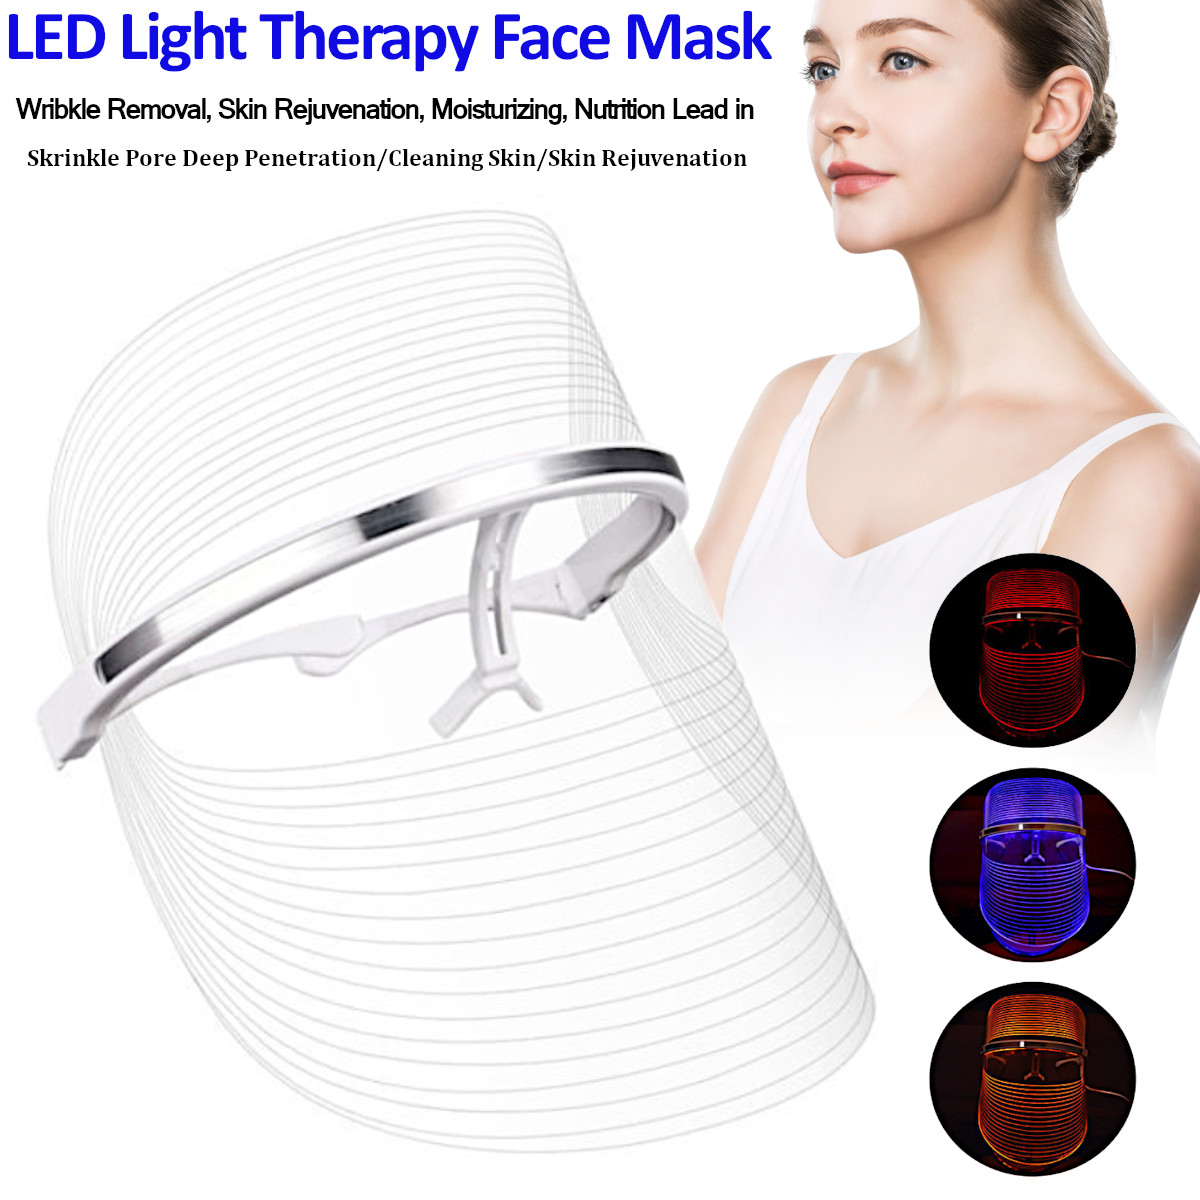 Pro Photon 3 LED Facial Mask Tightening Therapy Machine